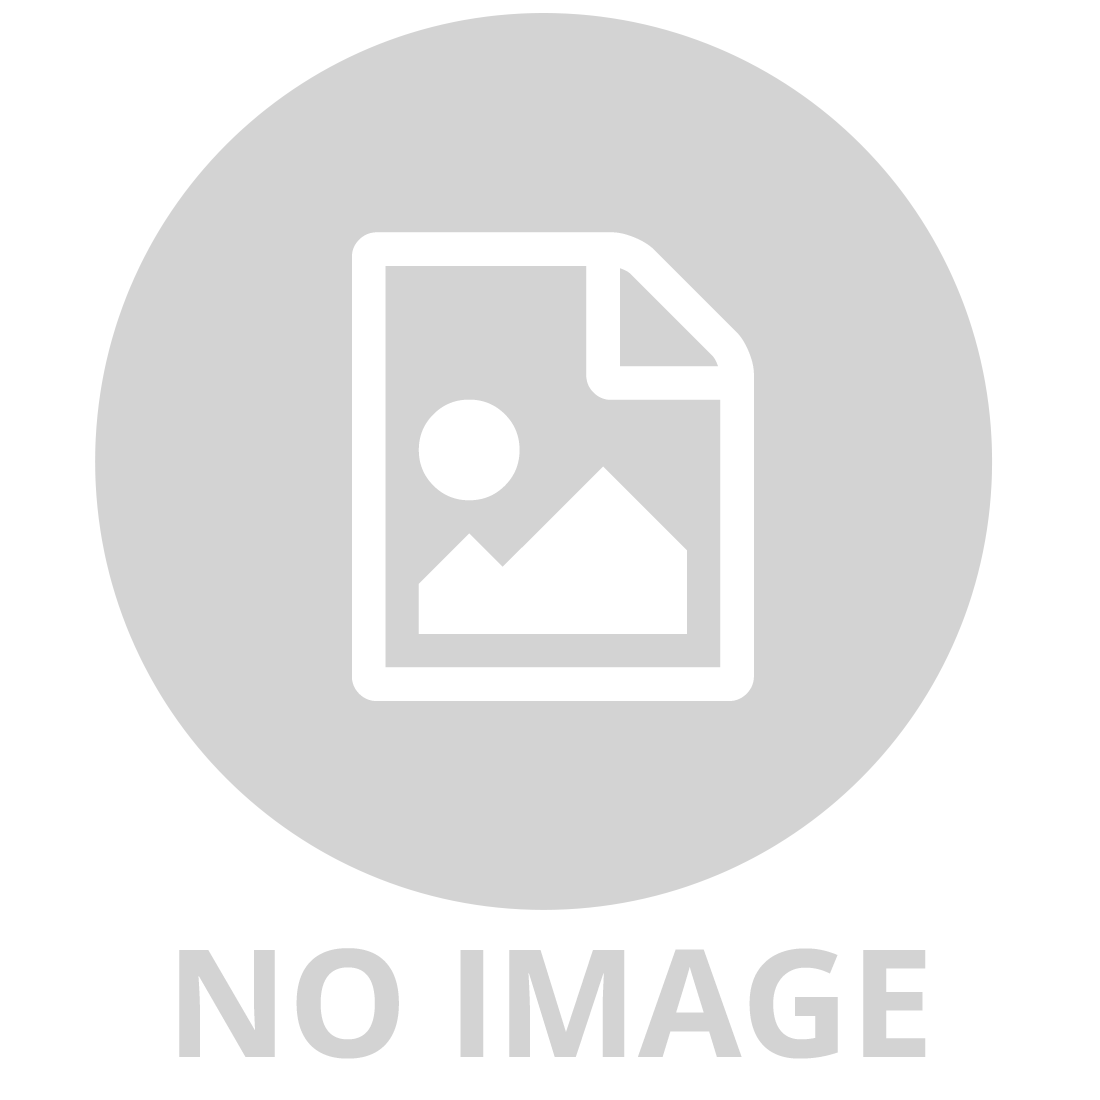 JOHN DEERE 1:16 DIE-CAST REPLICA MODEL 80 TRACTOR